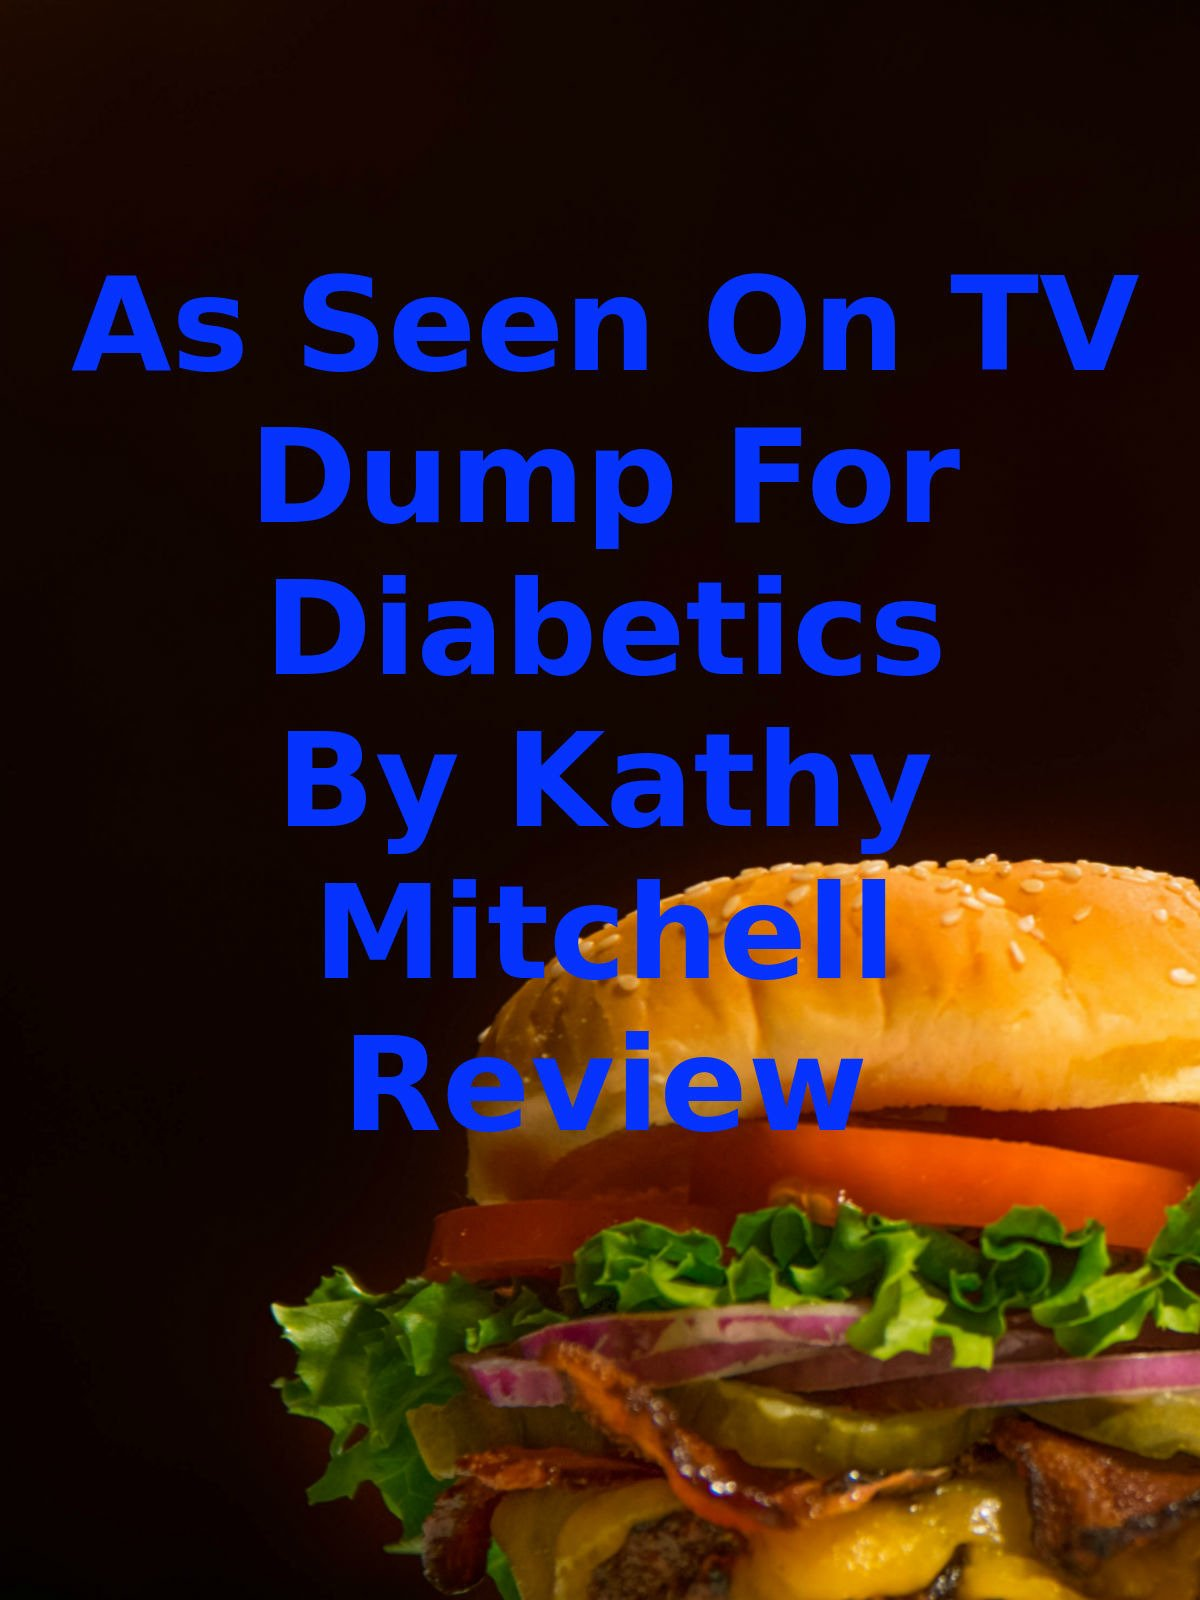 Review: As Seen On TV Dump For Diabetics By Kathy Mitchell Review